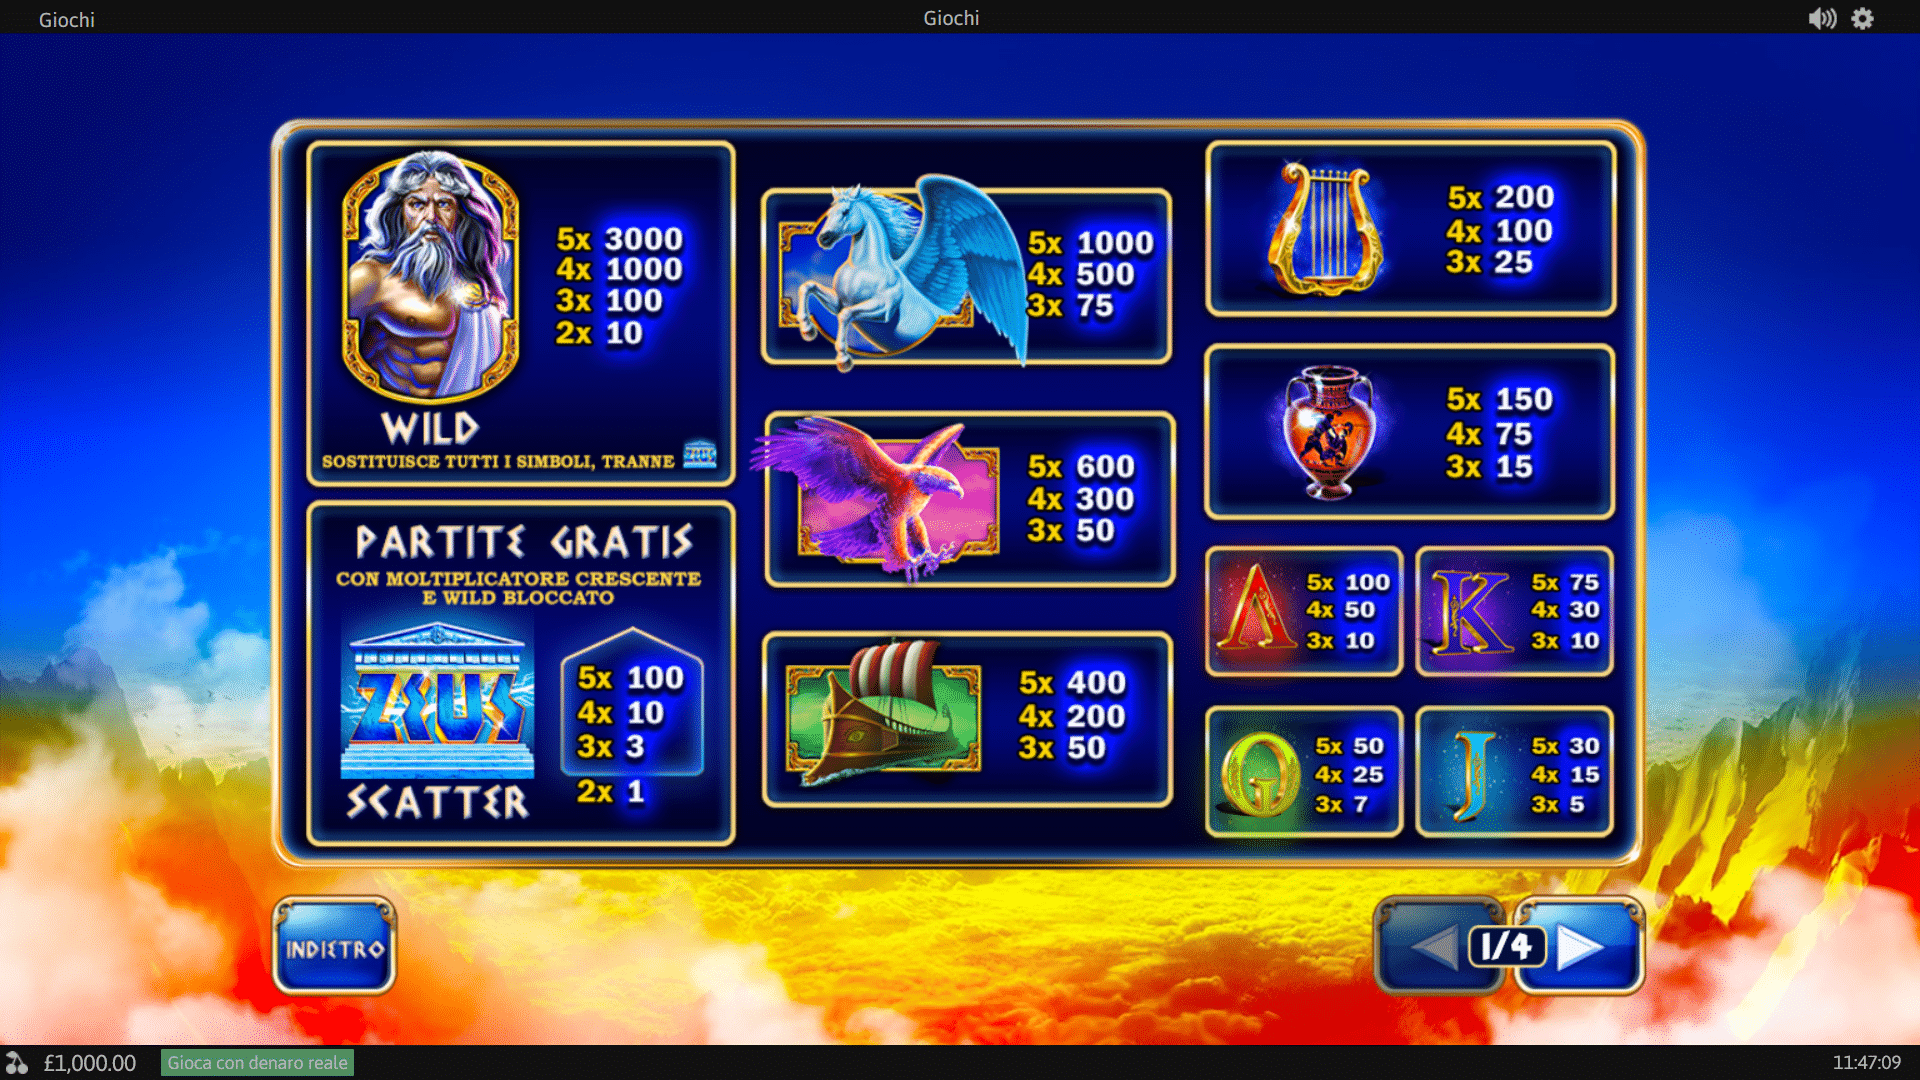 Tabella Pagamenti Slot gratis Age of the Gods King of Olympus